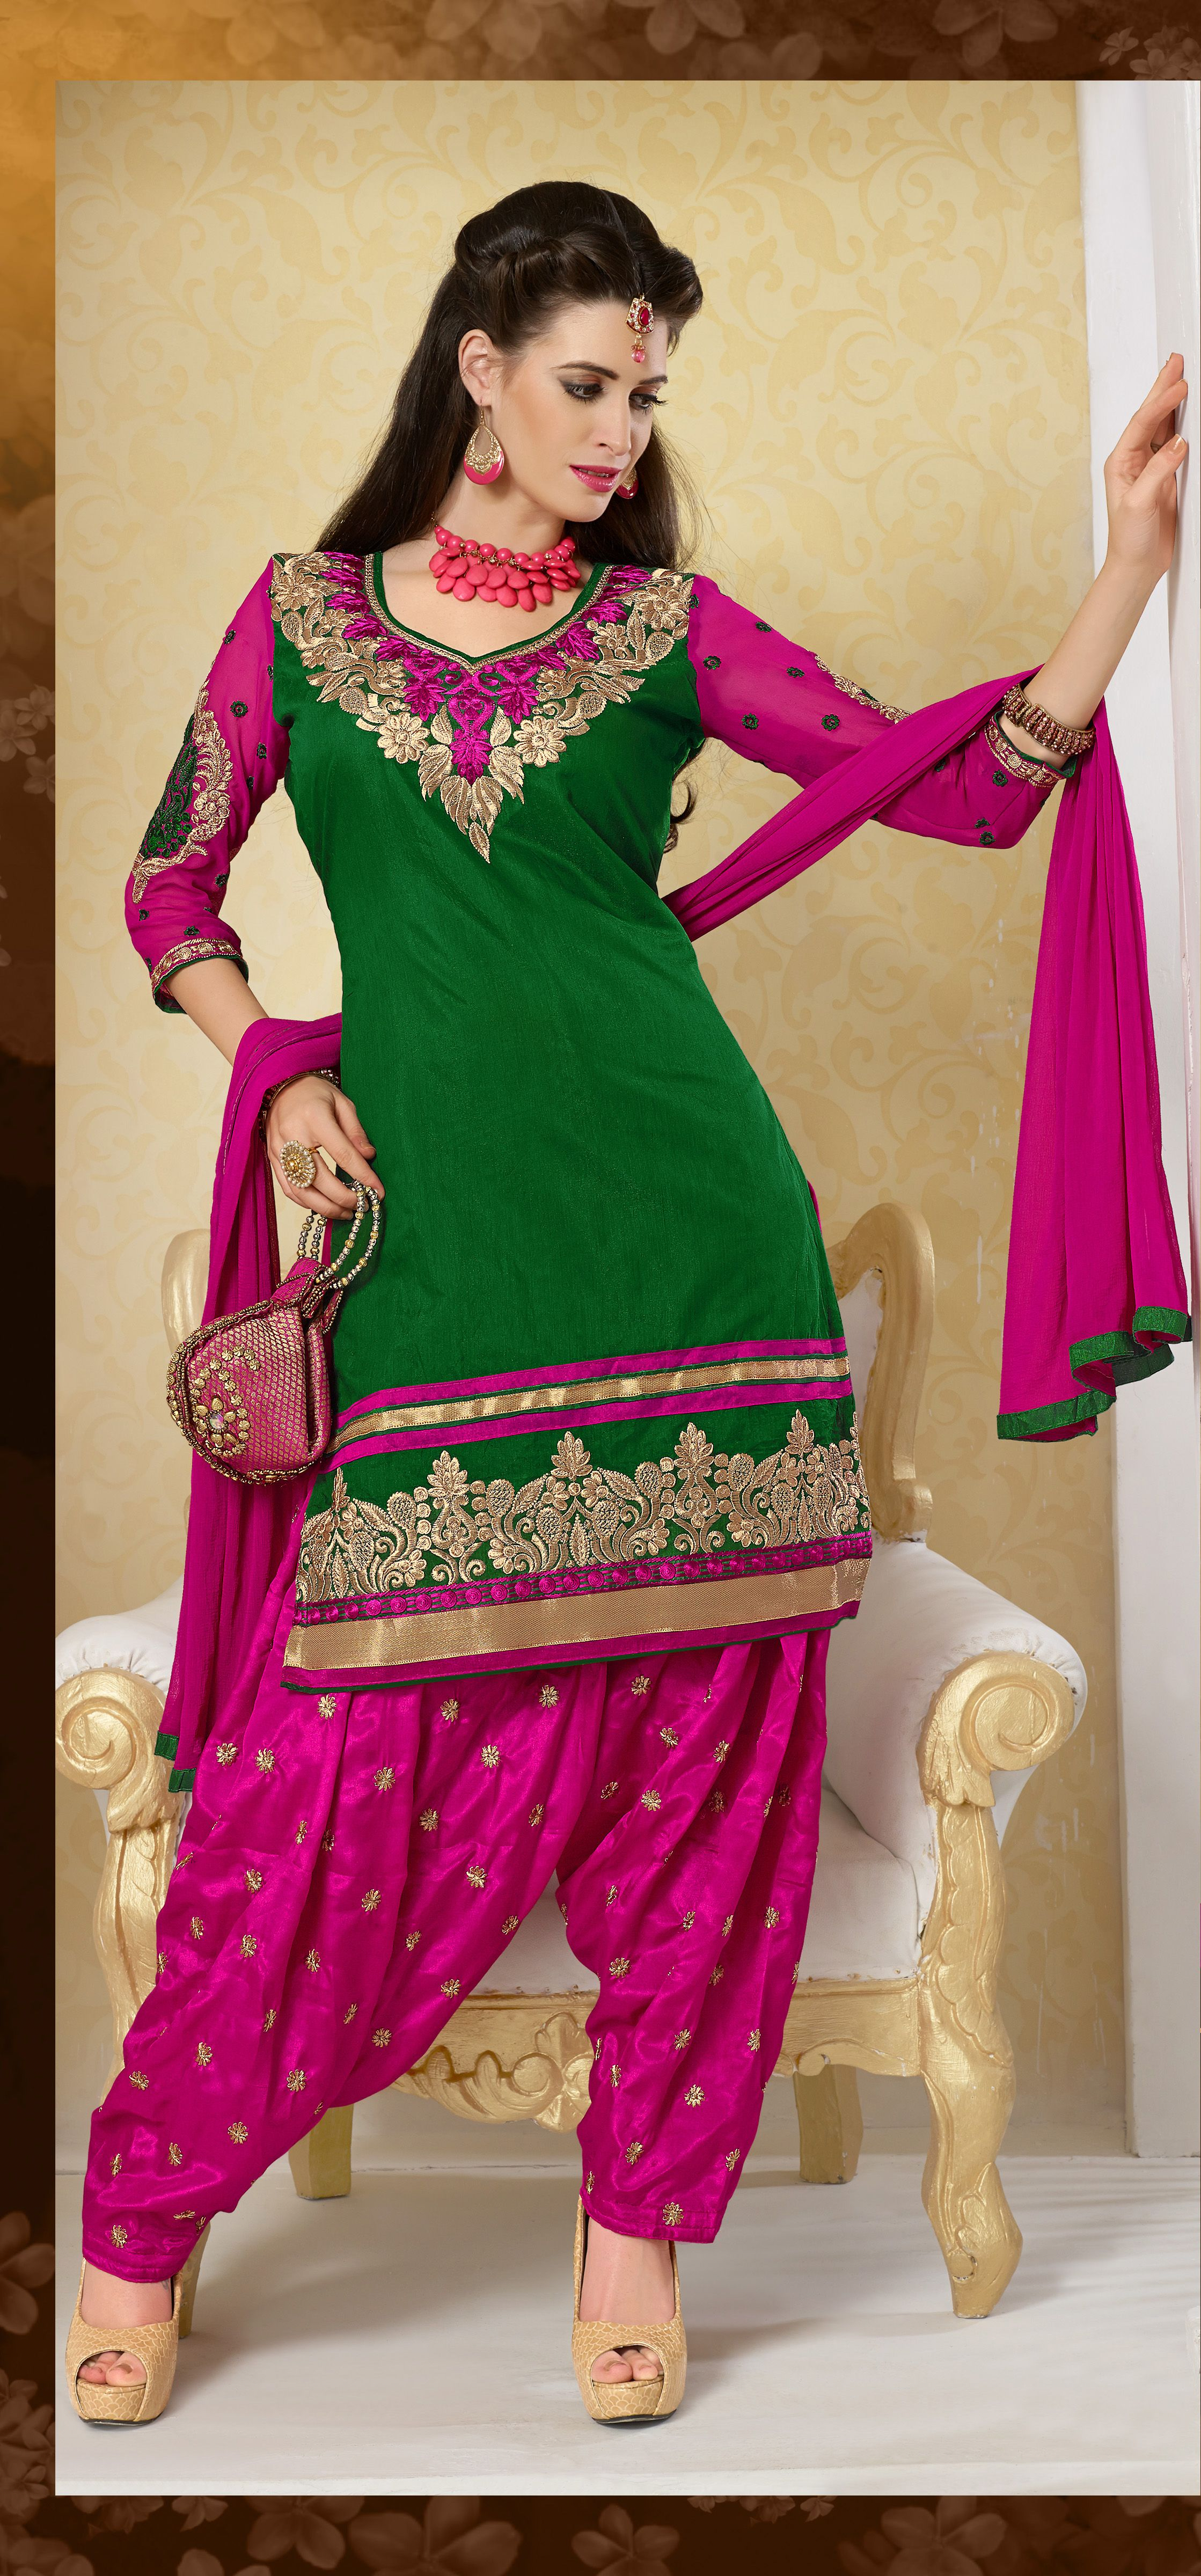 51dbfb4d03 Lovely designer Punjabi Salwar suit in Green with pink great combination  comes with pink chiffon dupatta.